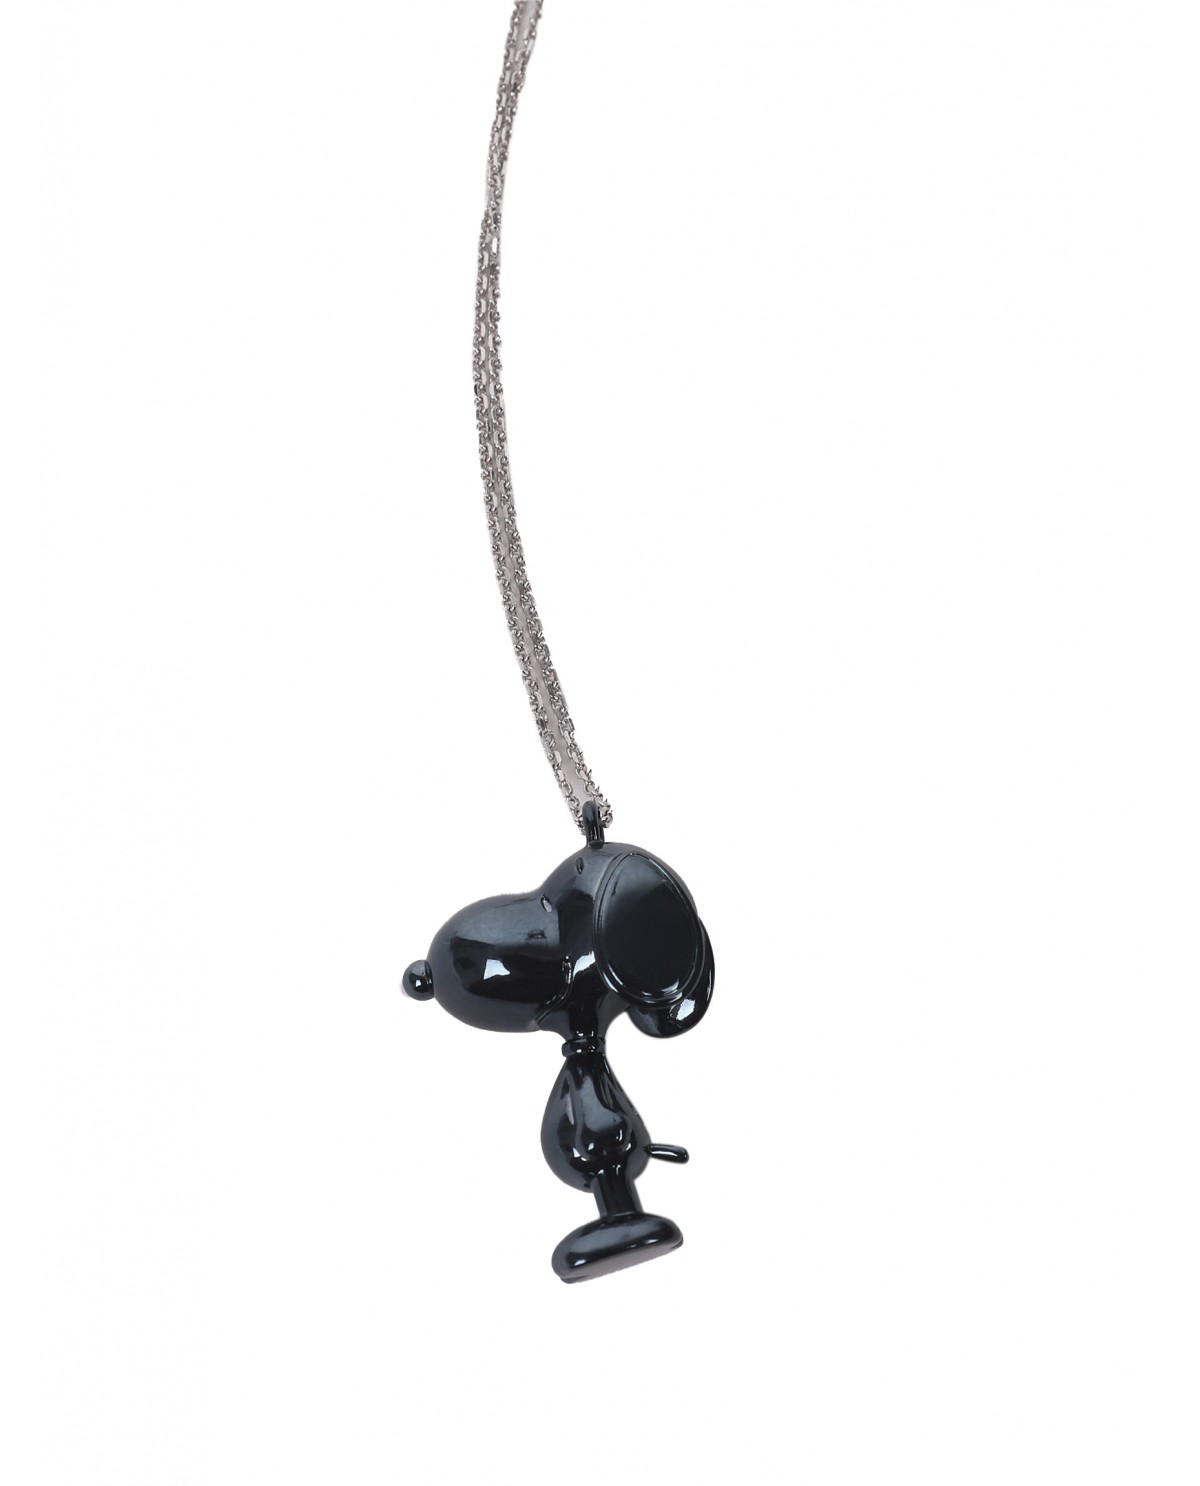 Marc Jacobs blue Peanuts Snoopy necklace